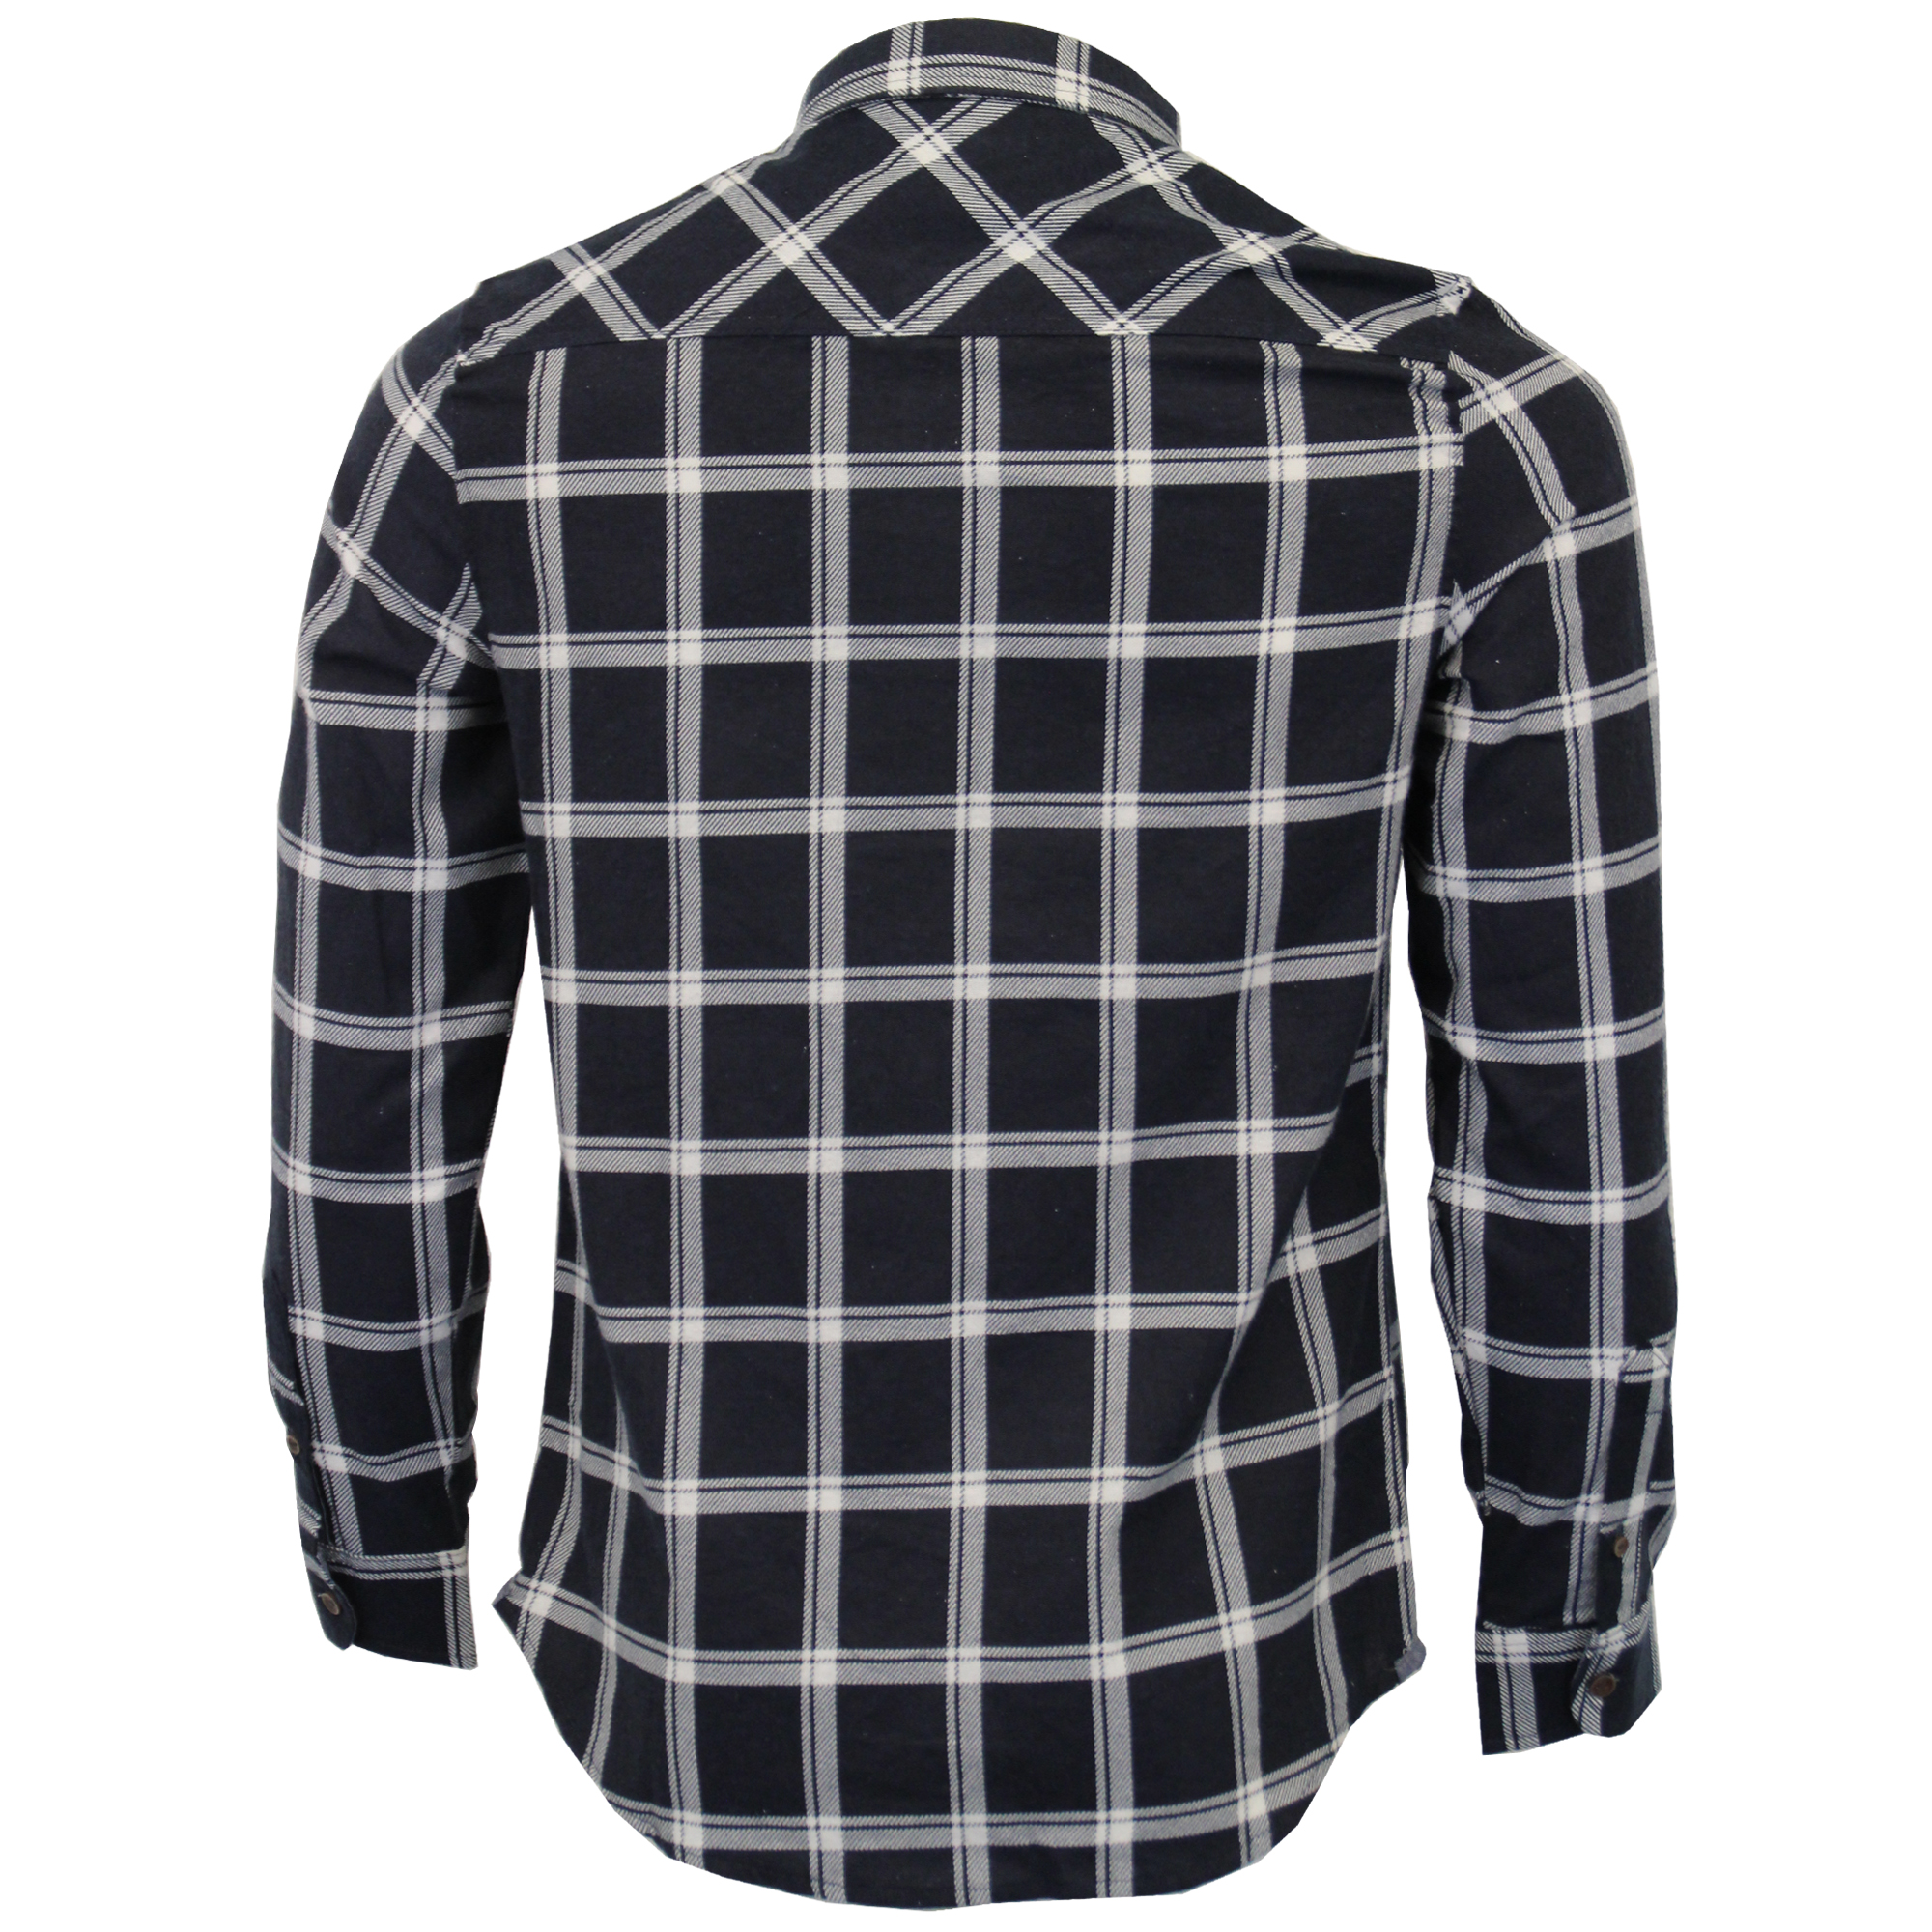 Mens-Checked-Tartan-Long-Sleeved-Collared-Shirt-By-Brave-Soul miniatuur 6